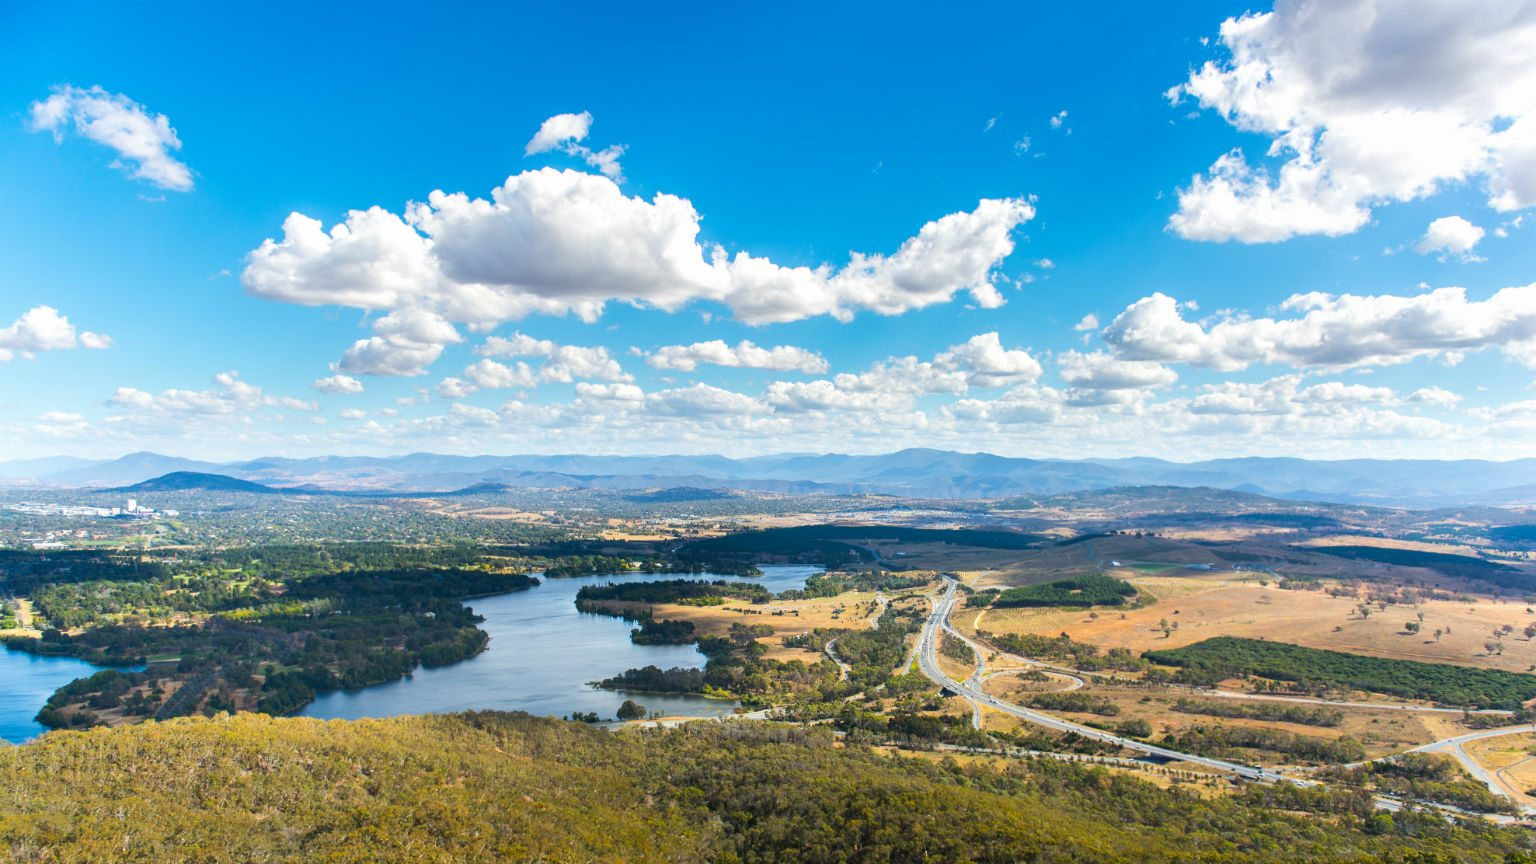 Canberra lookout